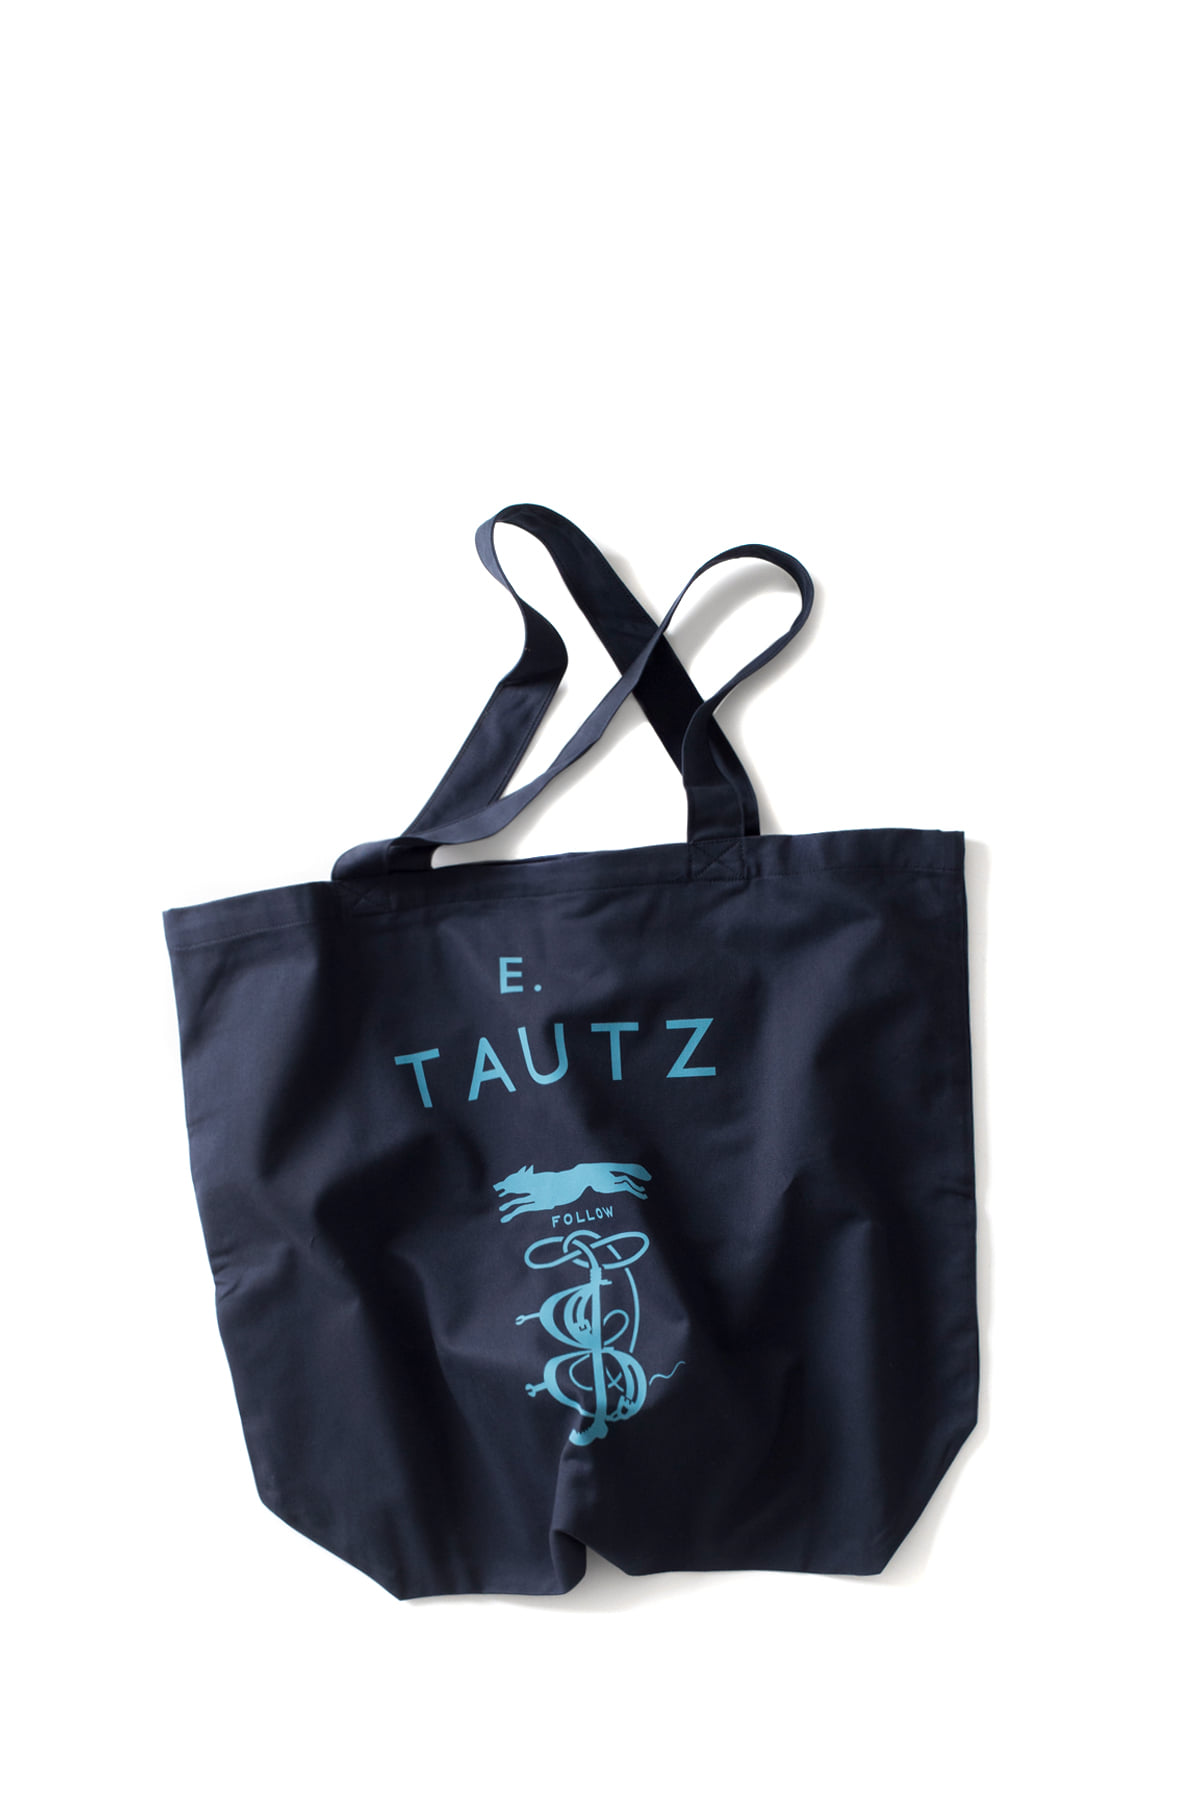 E. Tautz : Core Tote Bag (Light Blue)